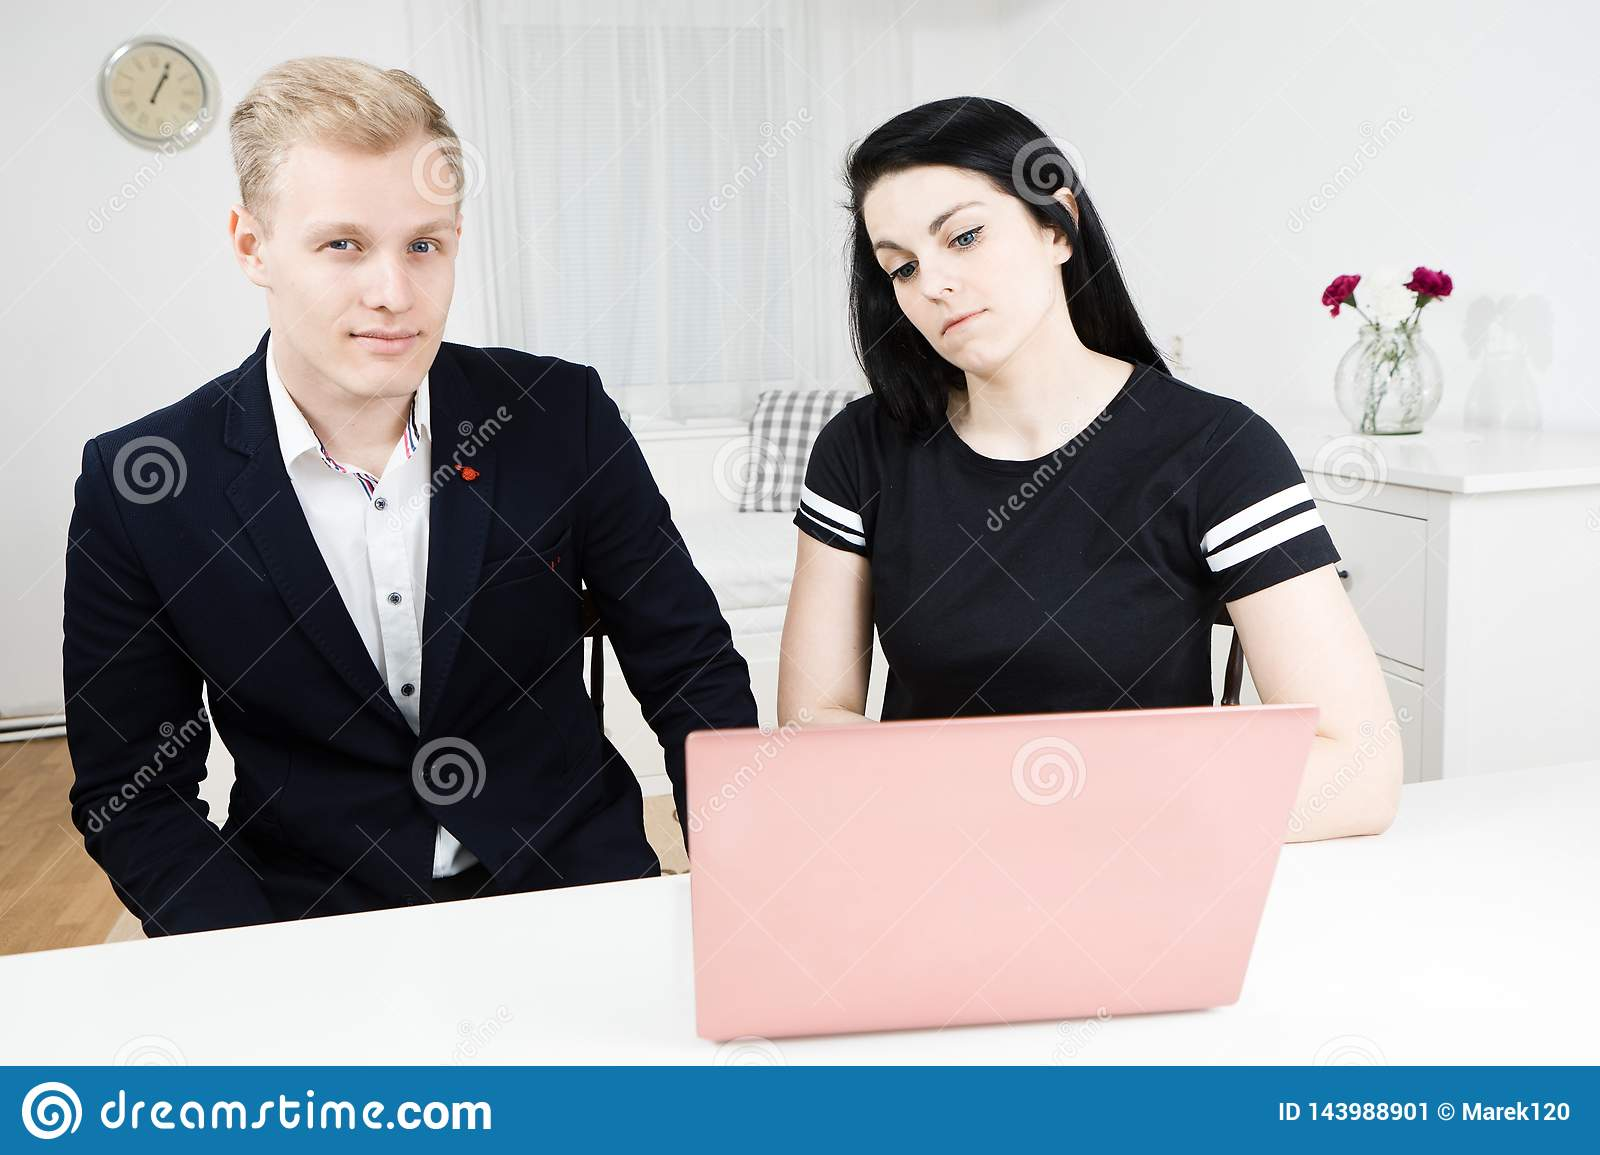 Superiors works with subordinate. Blond man working with black haired woman